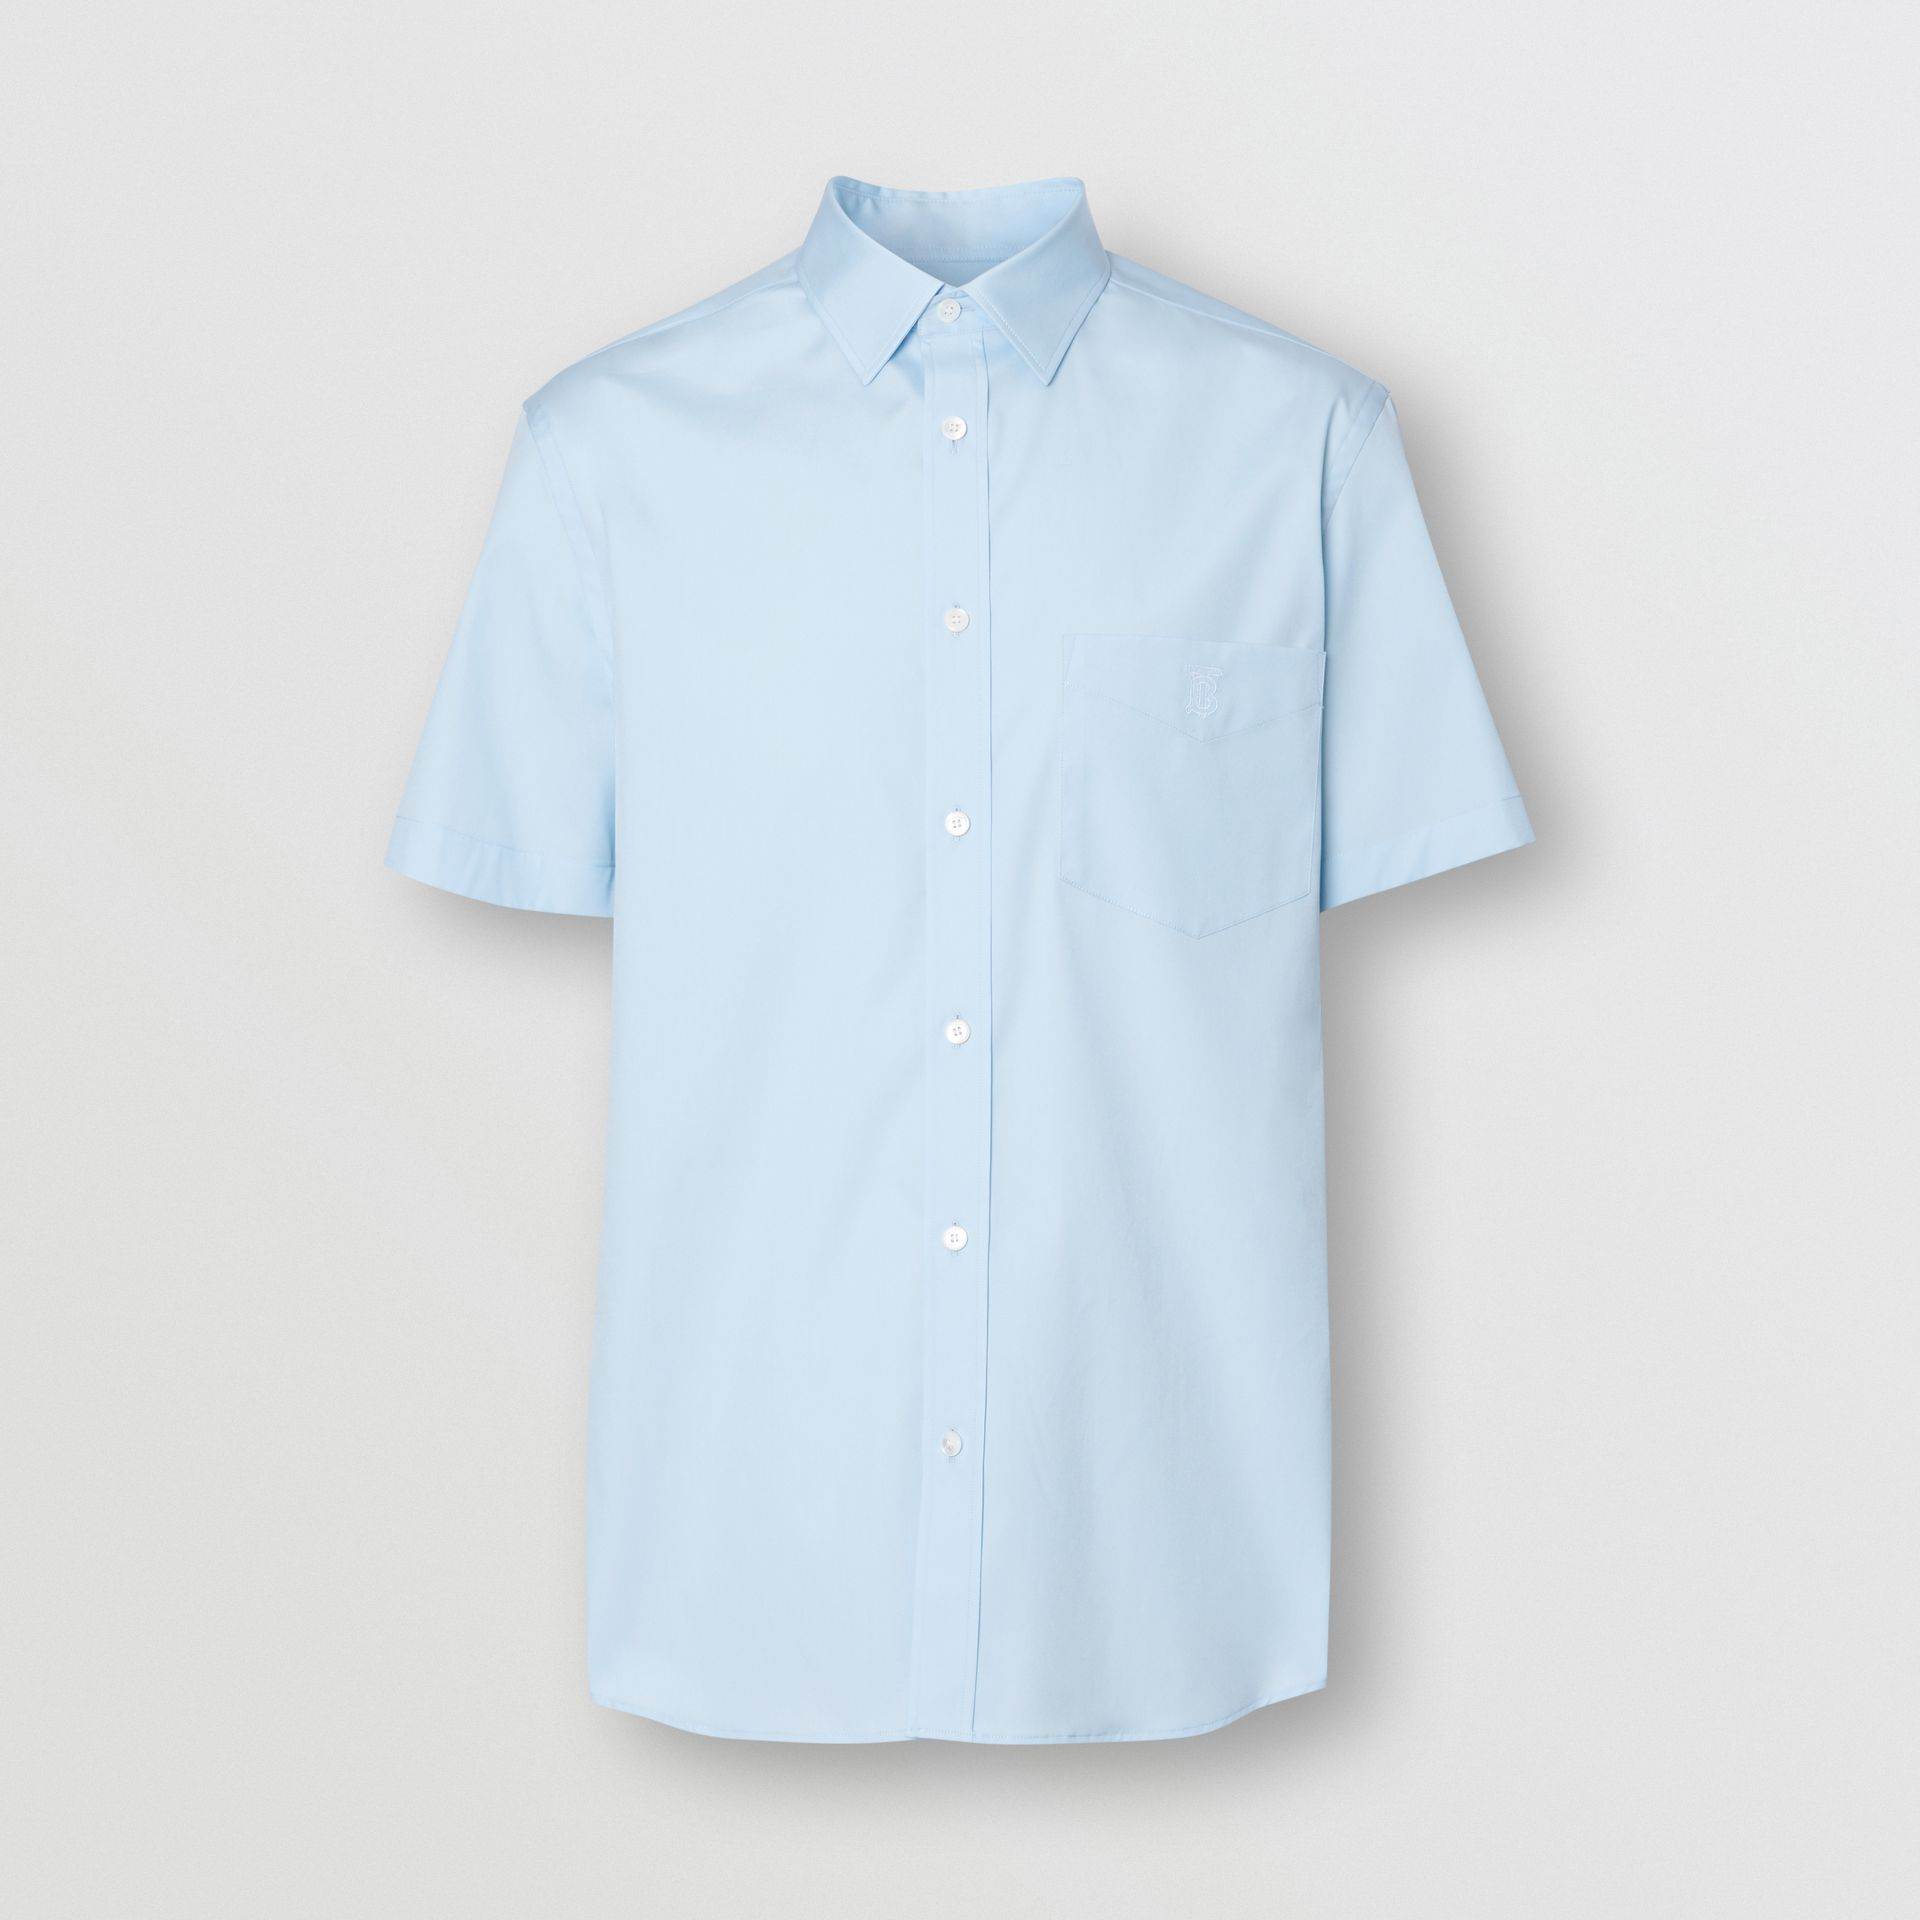 Short-sleeve Monogram Motif Stretch Cotton Shirt in Pale Blue - Men | Burberry - gallery image 3